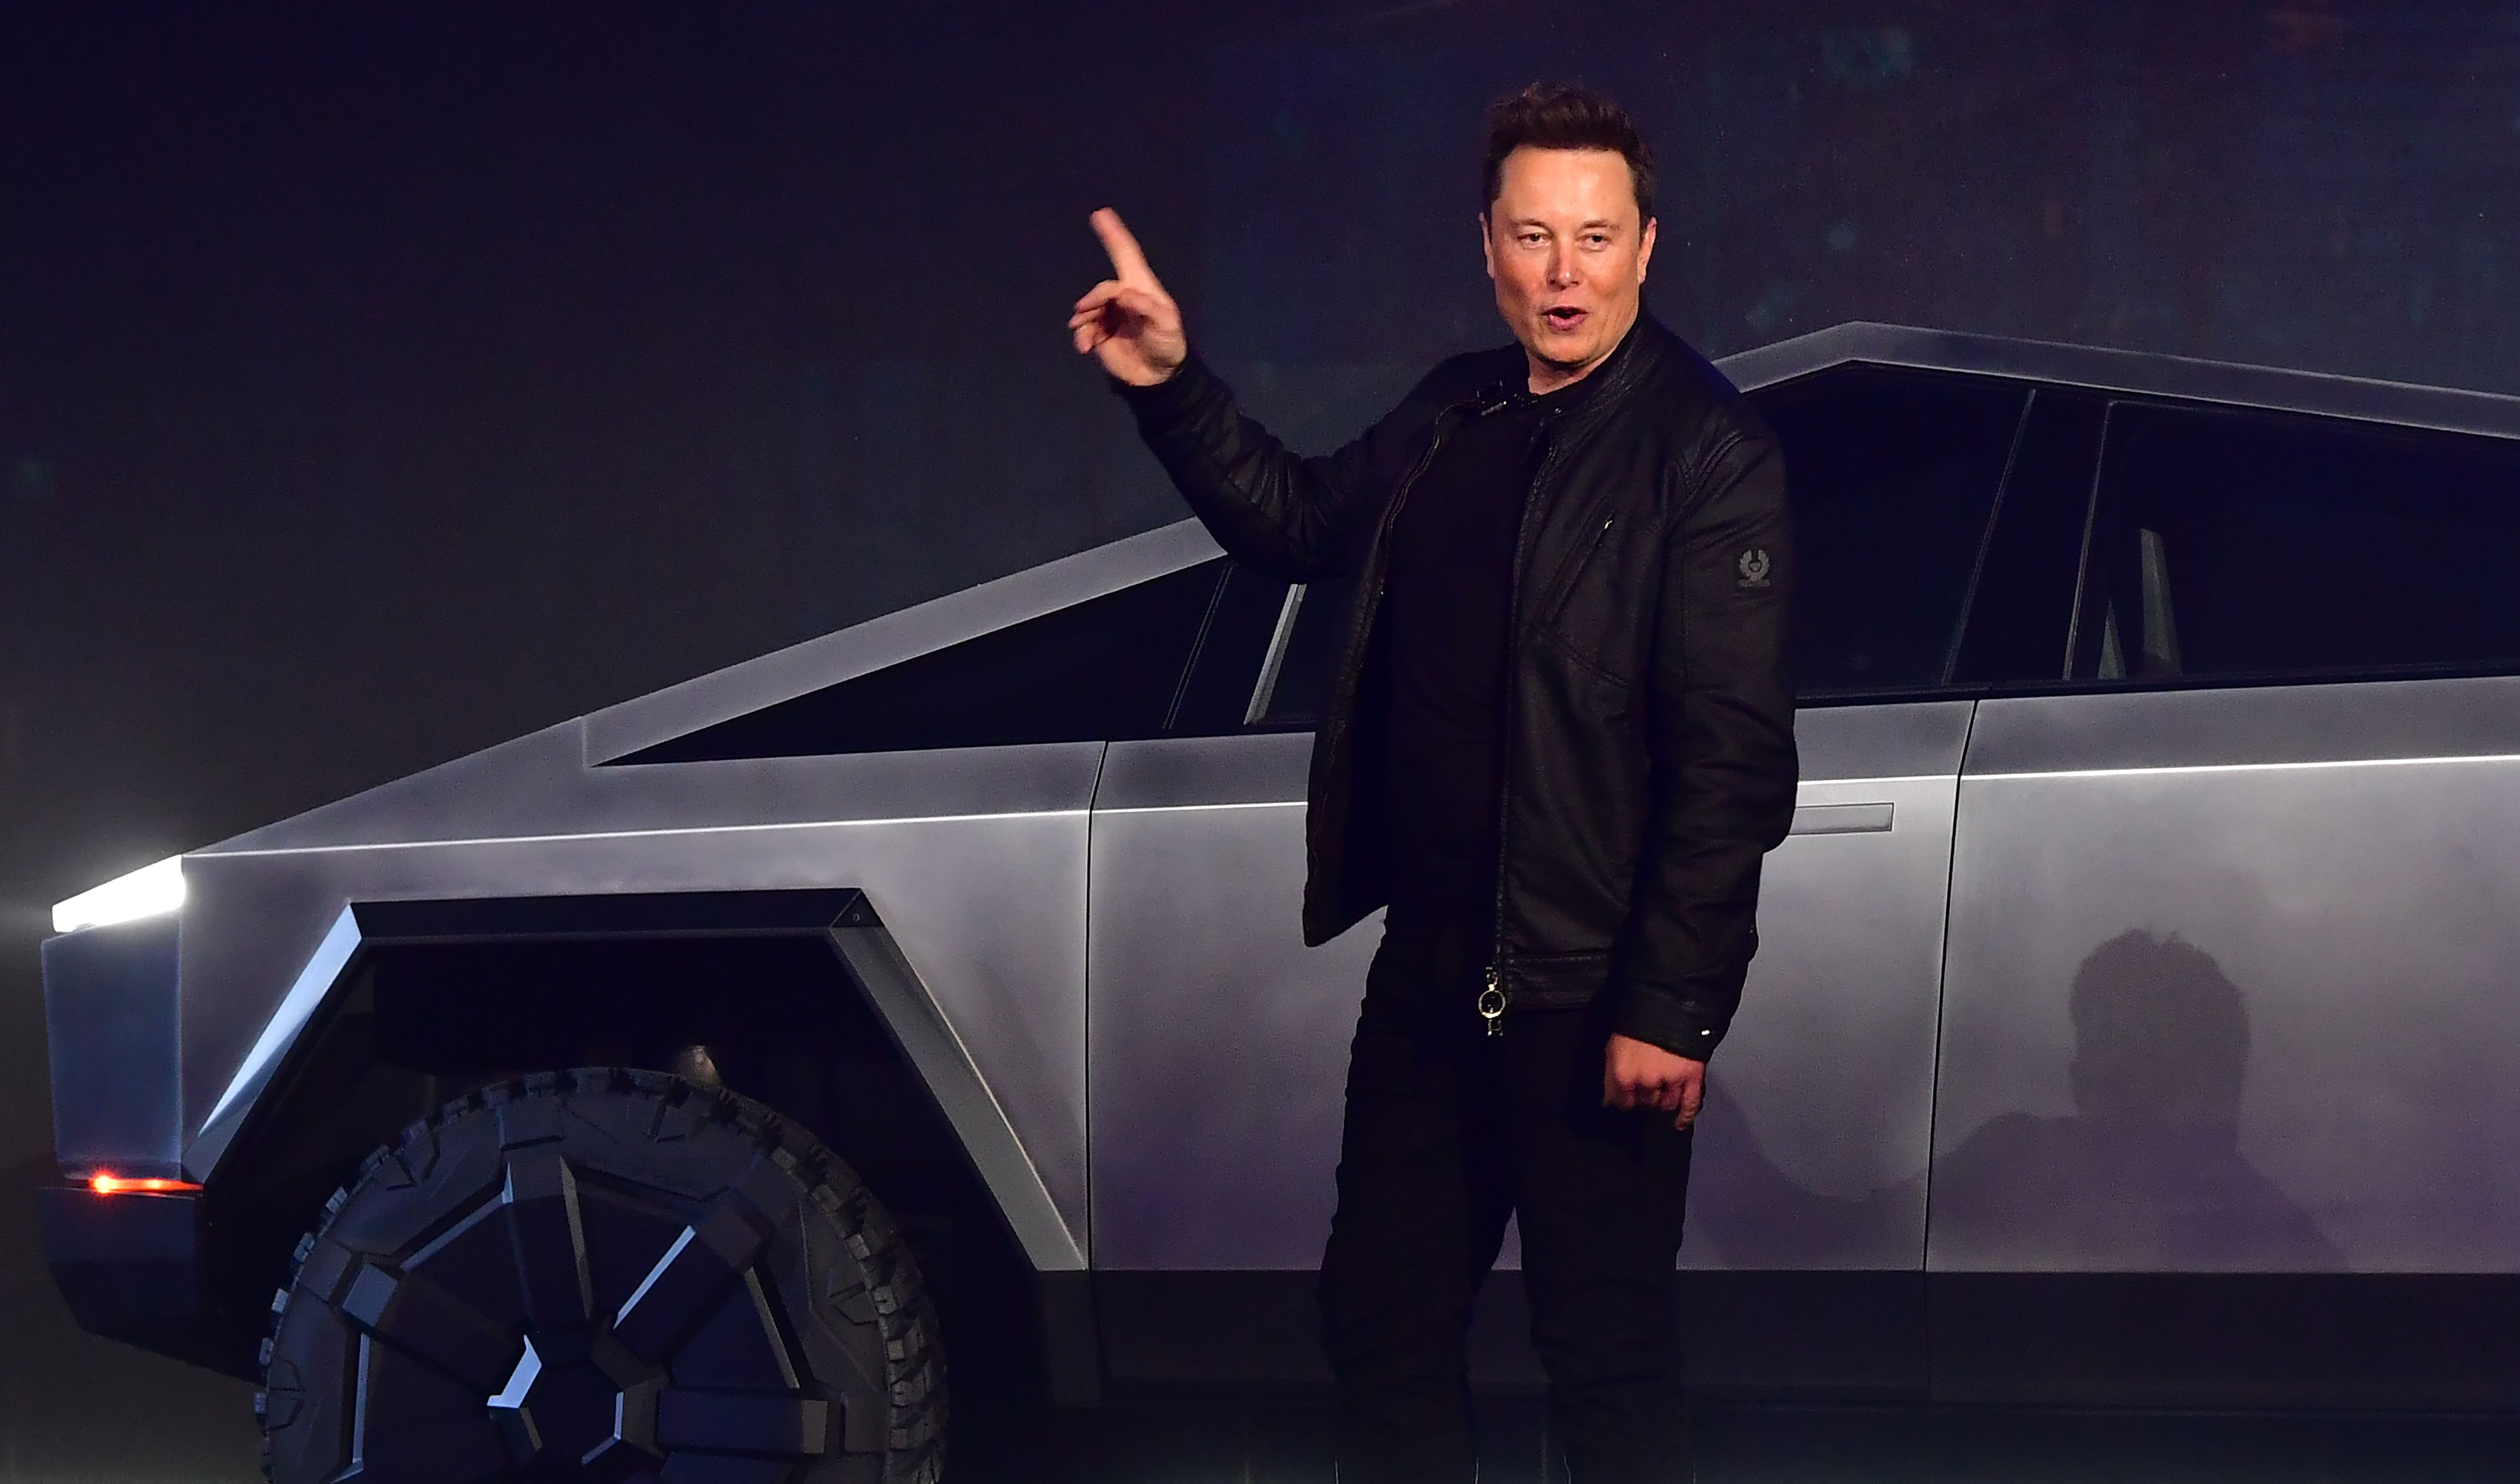 Tesla co-founder and CEO Elon Musk gestures while introducing the newly unveiled all-electric battery-powered Tesla Cybertruck at Tesla Design Center in Hawthorne, California on November 21, 2019. (Photo by Frederic J. BROWN / AFP) (Photo by FREDERIC J. BROWN/AFP via Getty Images)